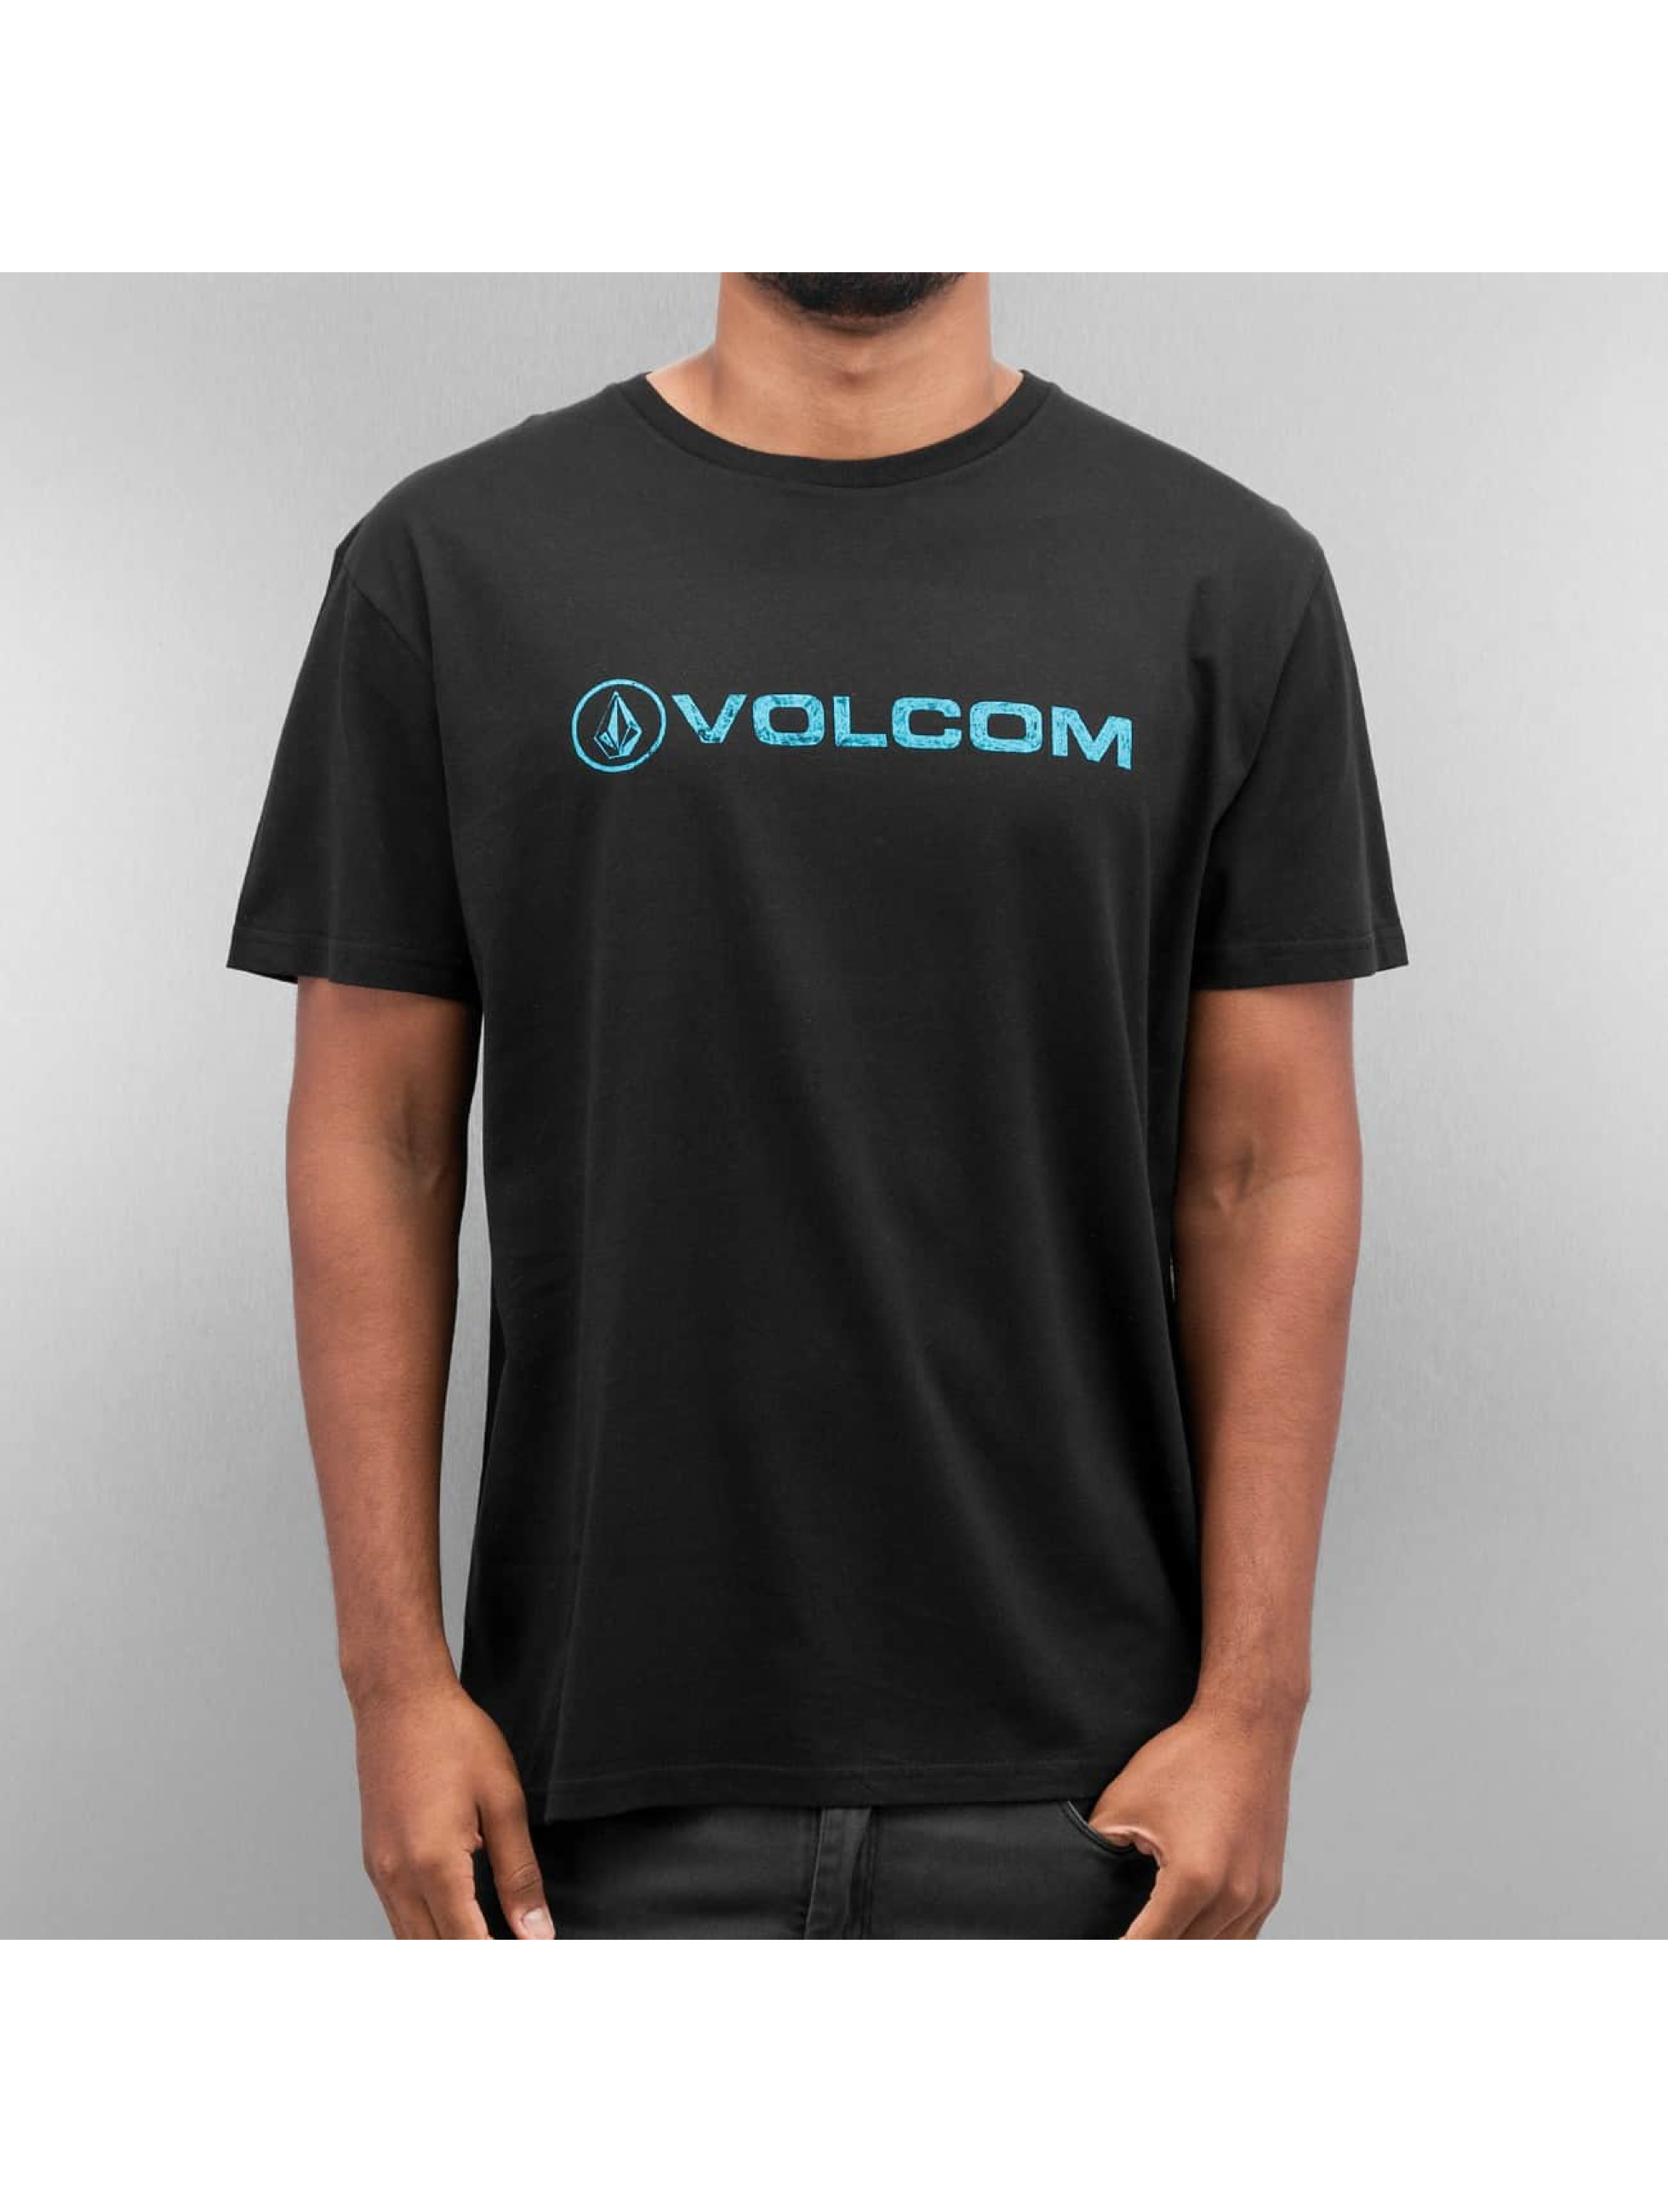 Volcom T-Shirt Euro Pencil schwarz